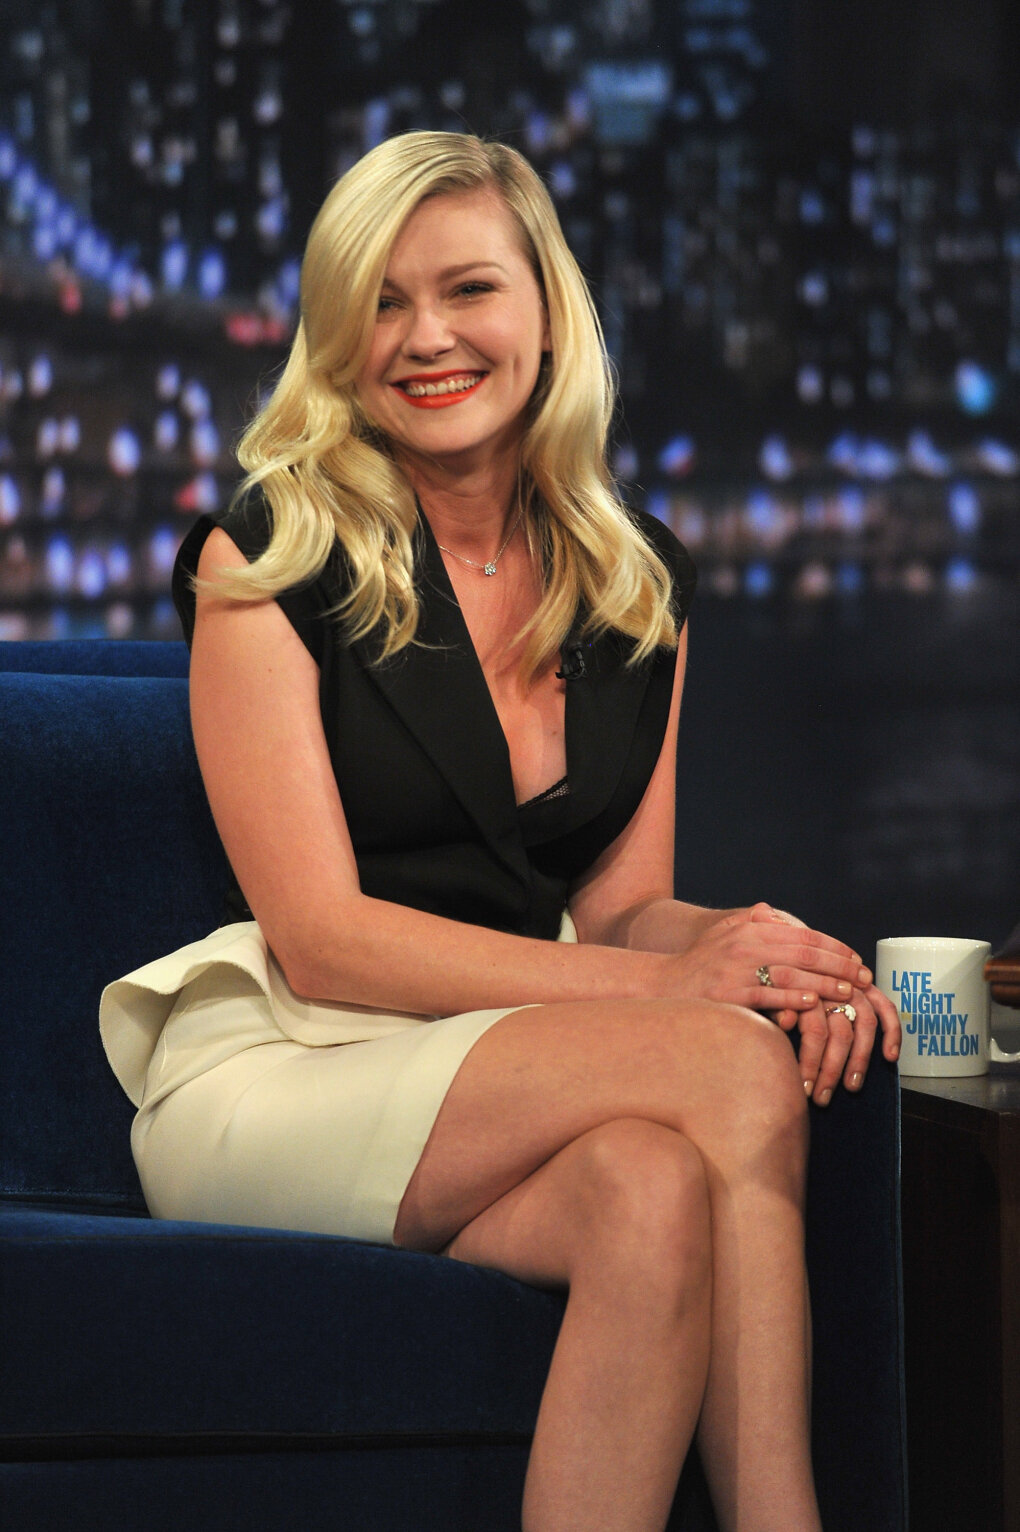 kirsten dunst talk show post from rtalkshowgirls